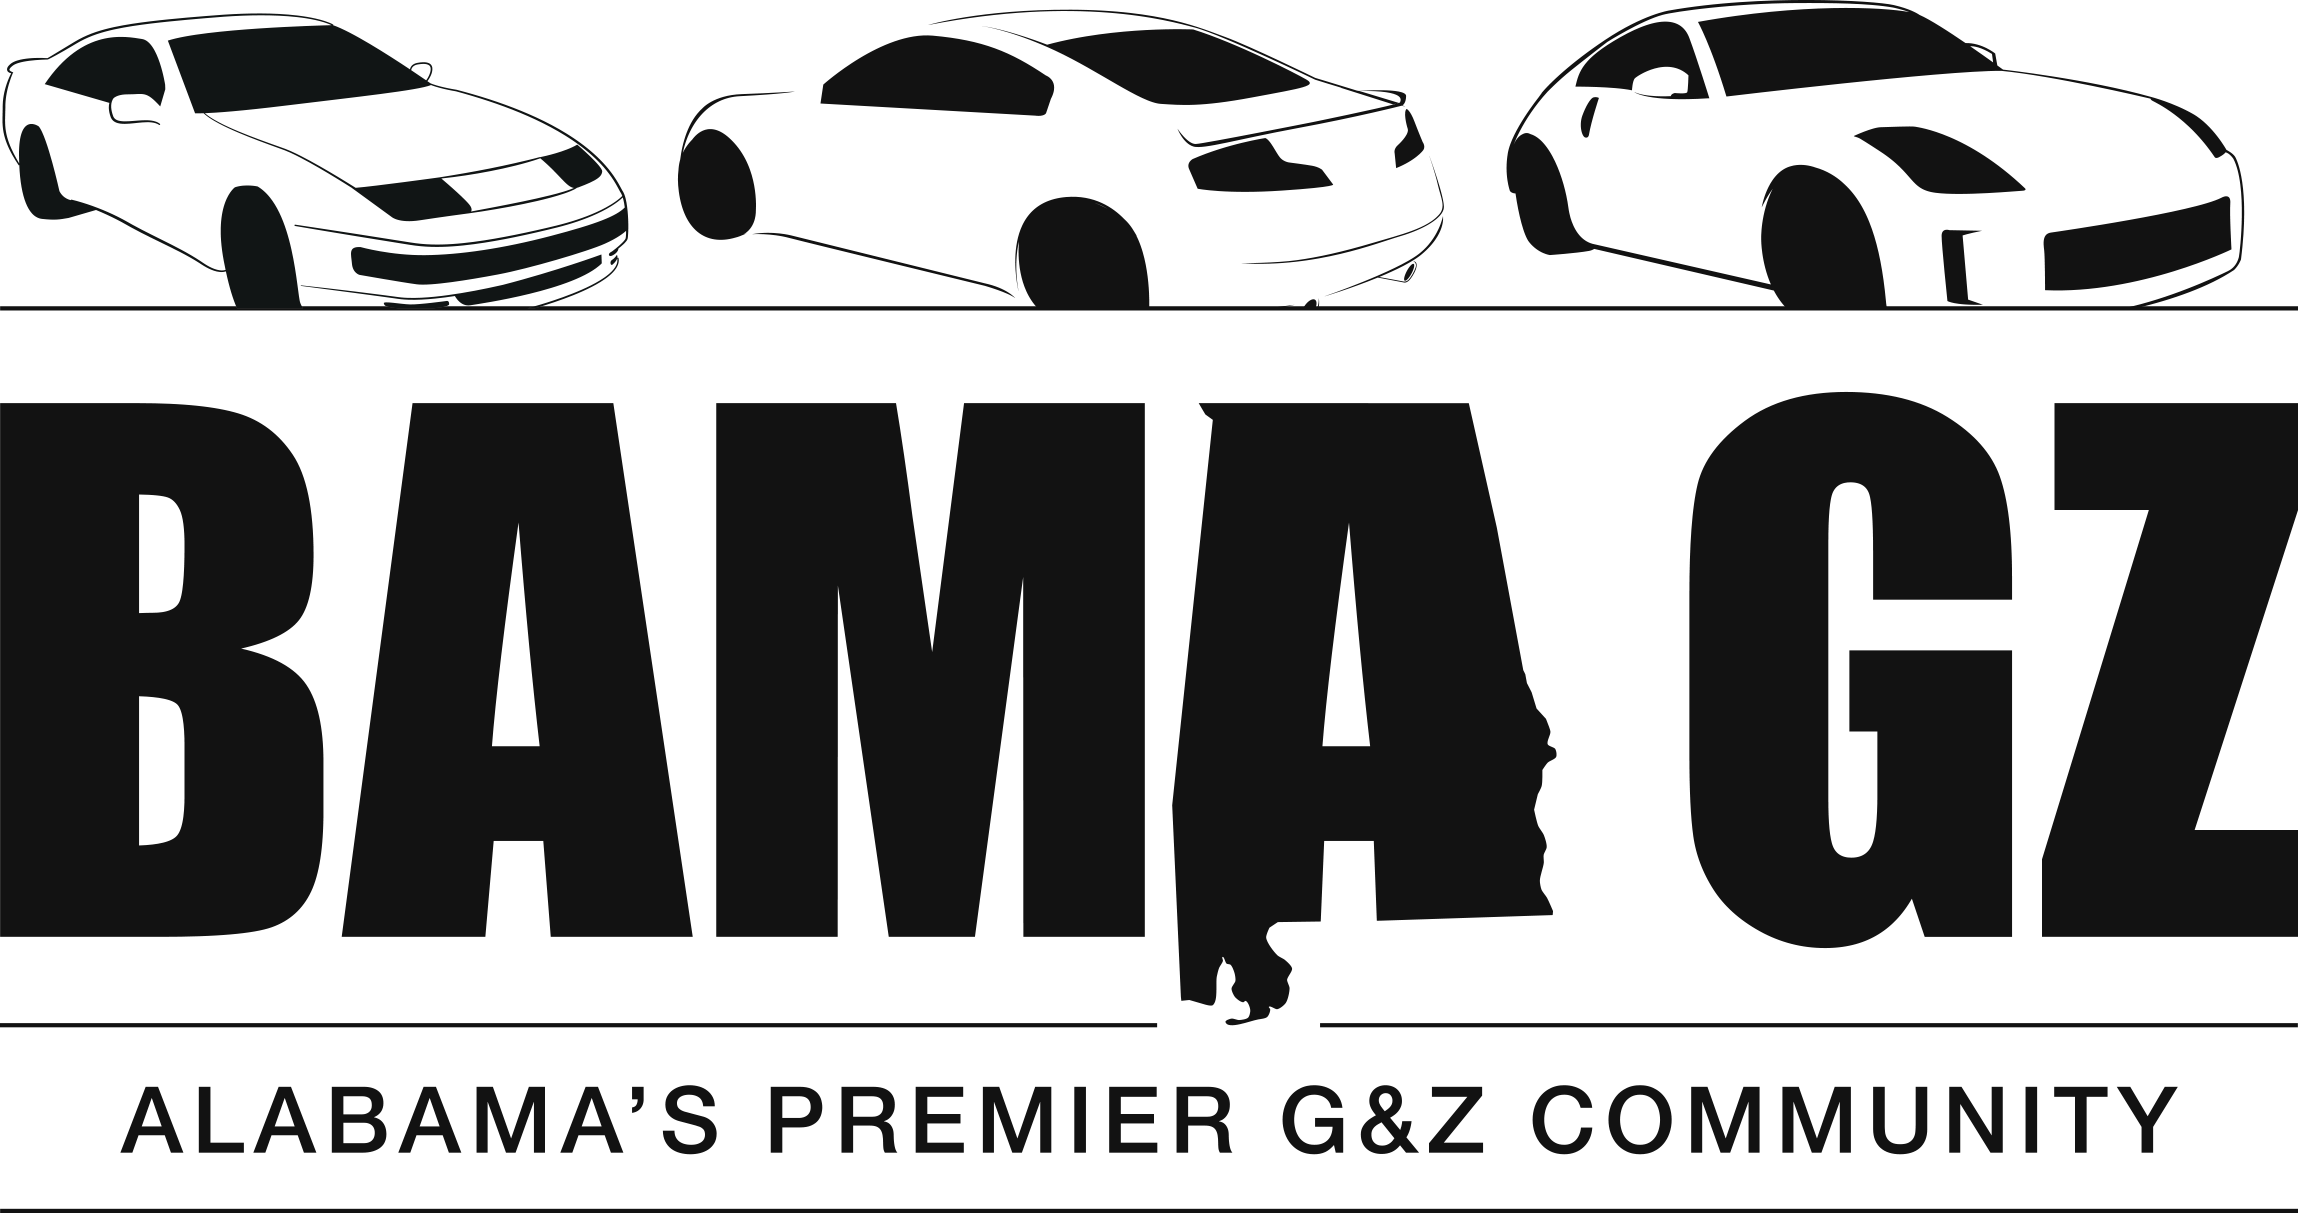 Visit Alabama G & Z Club